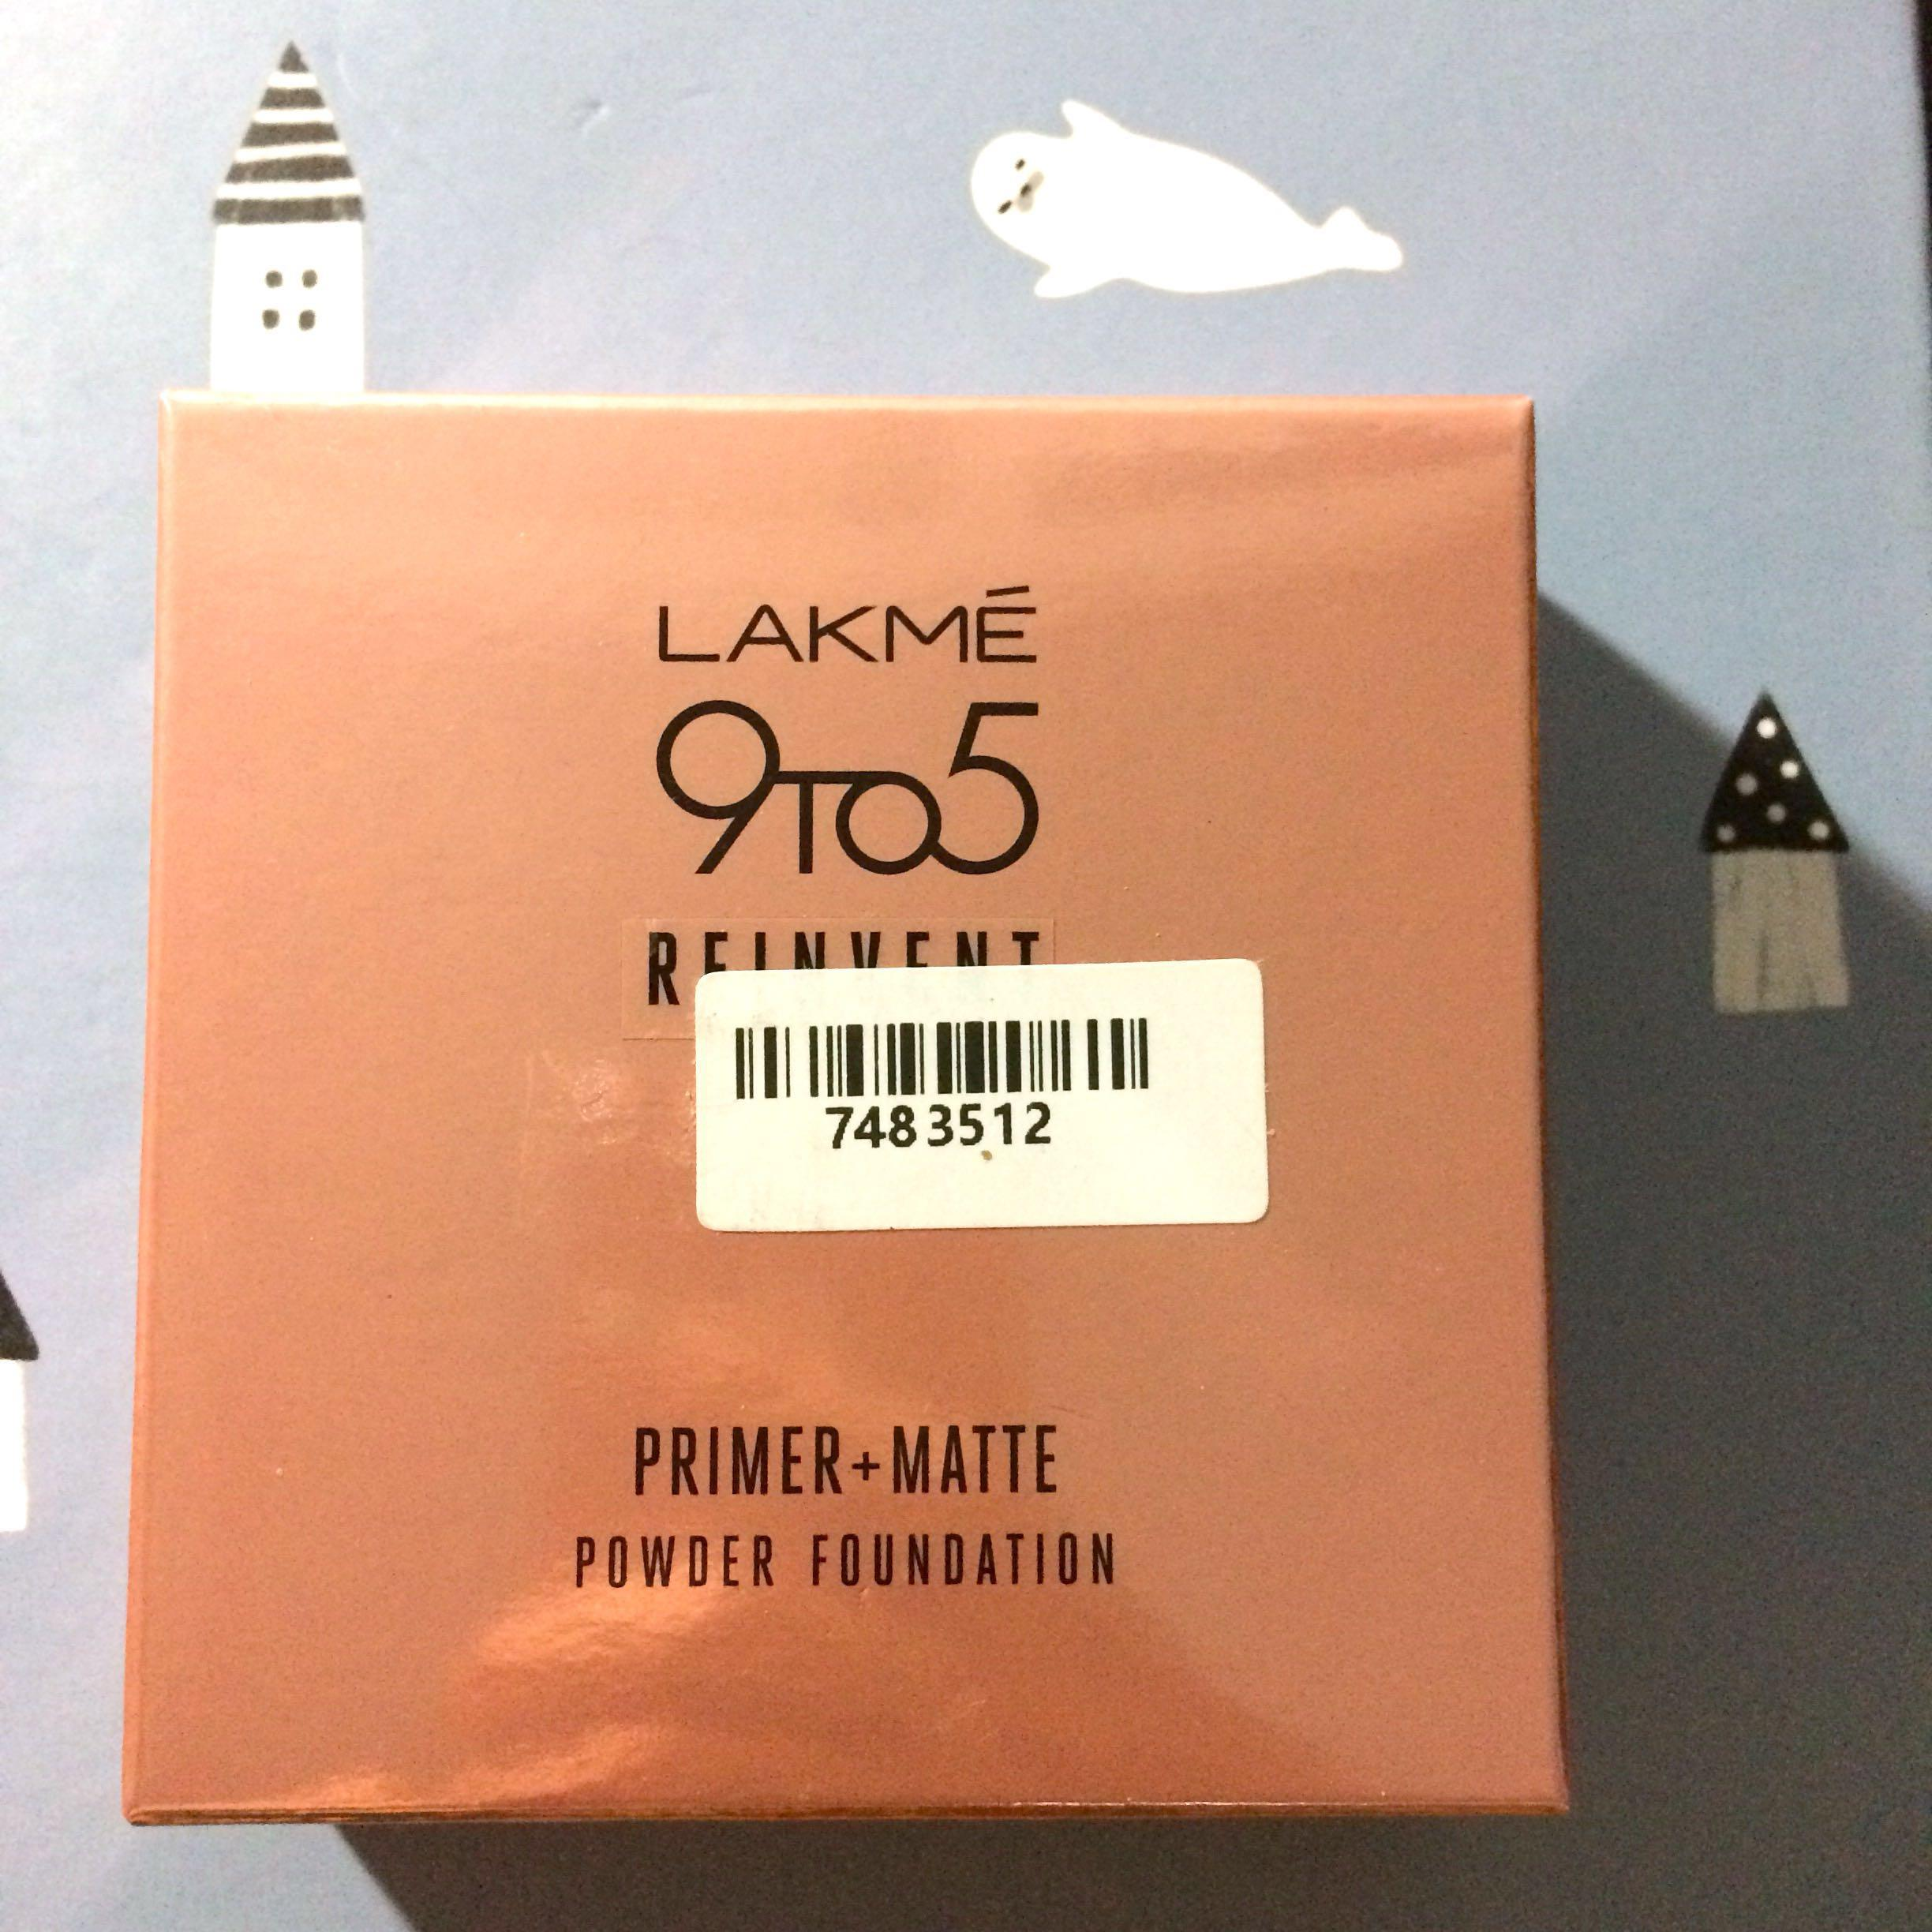 Lakme 9TO5 Reinvent Primer + Matte Powder Foundation